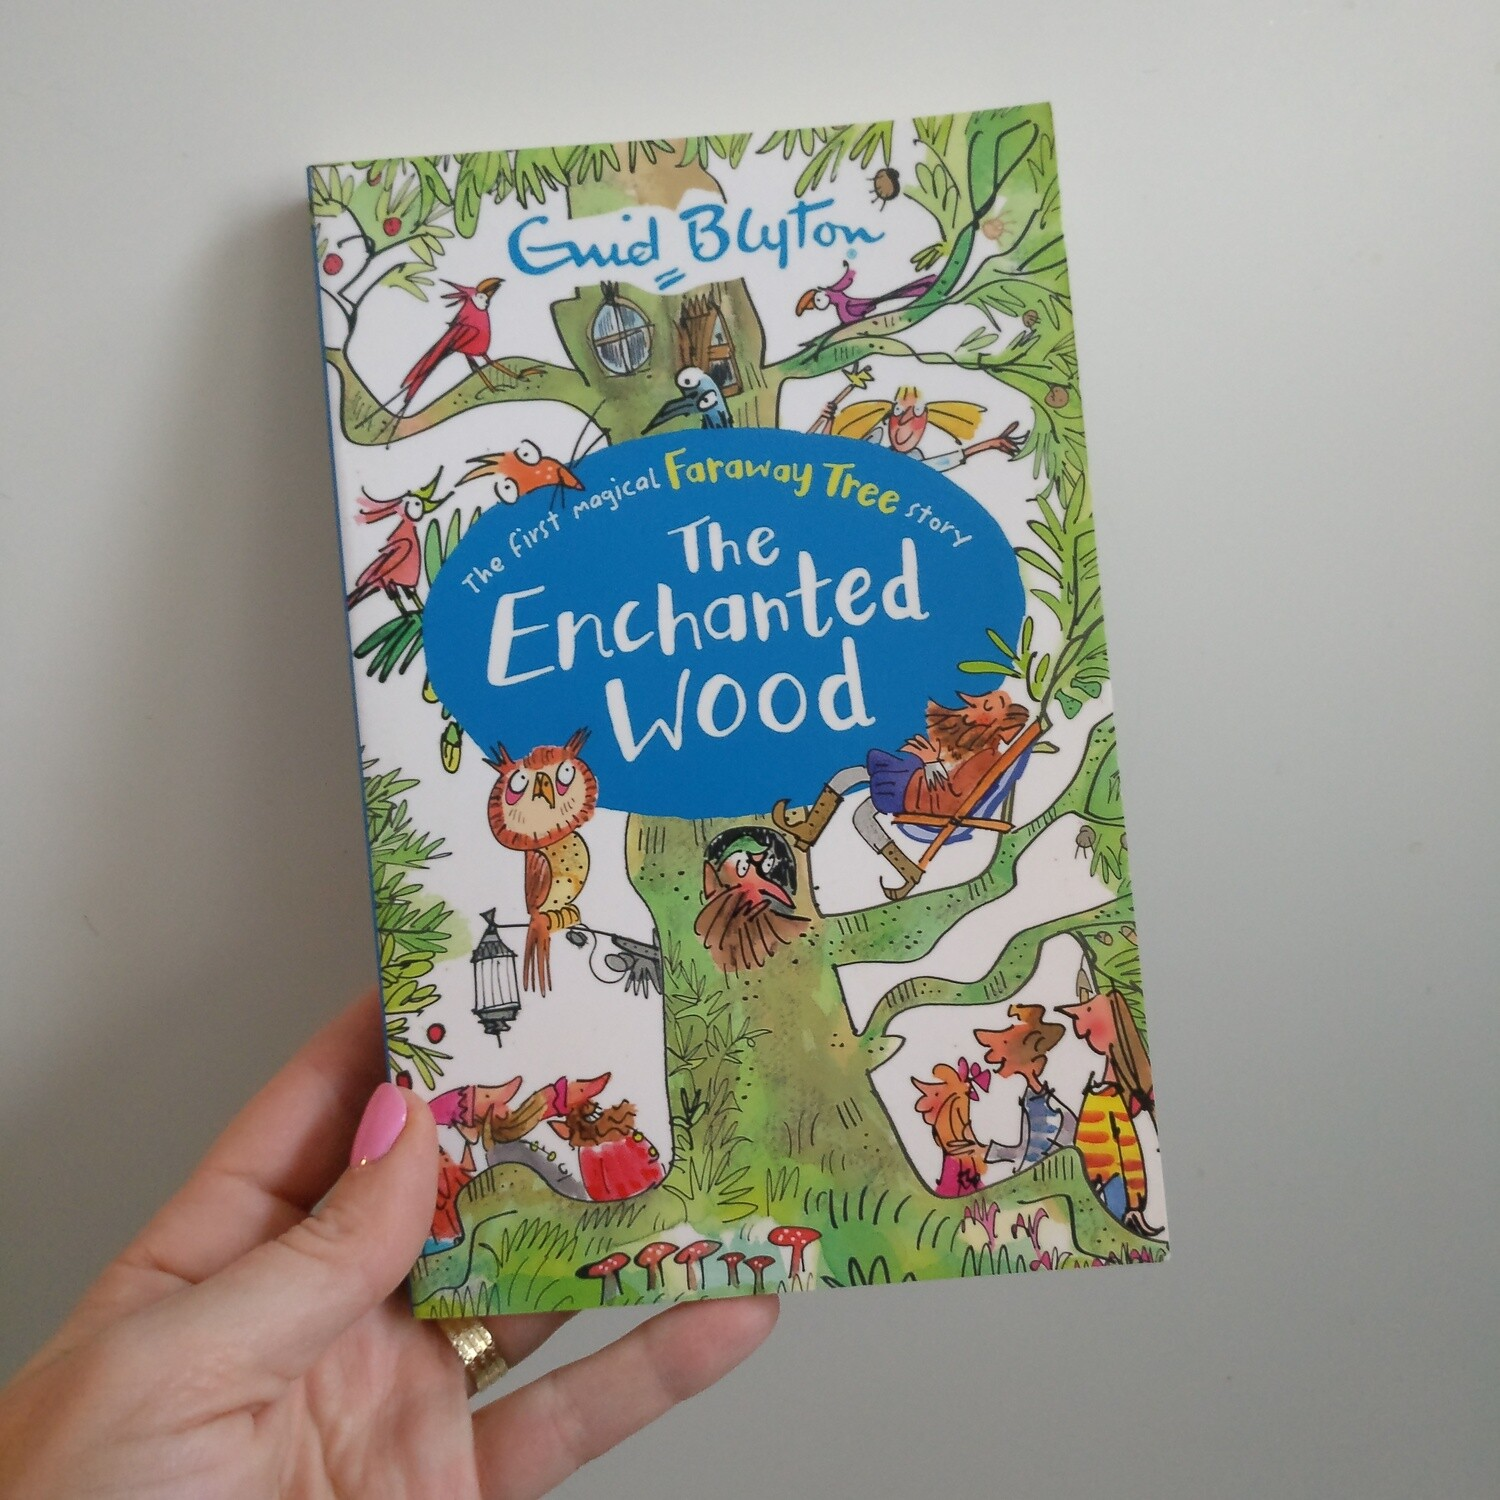 The Enchanted Wood Notebook Enid Blyton made from a paperback book